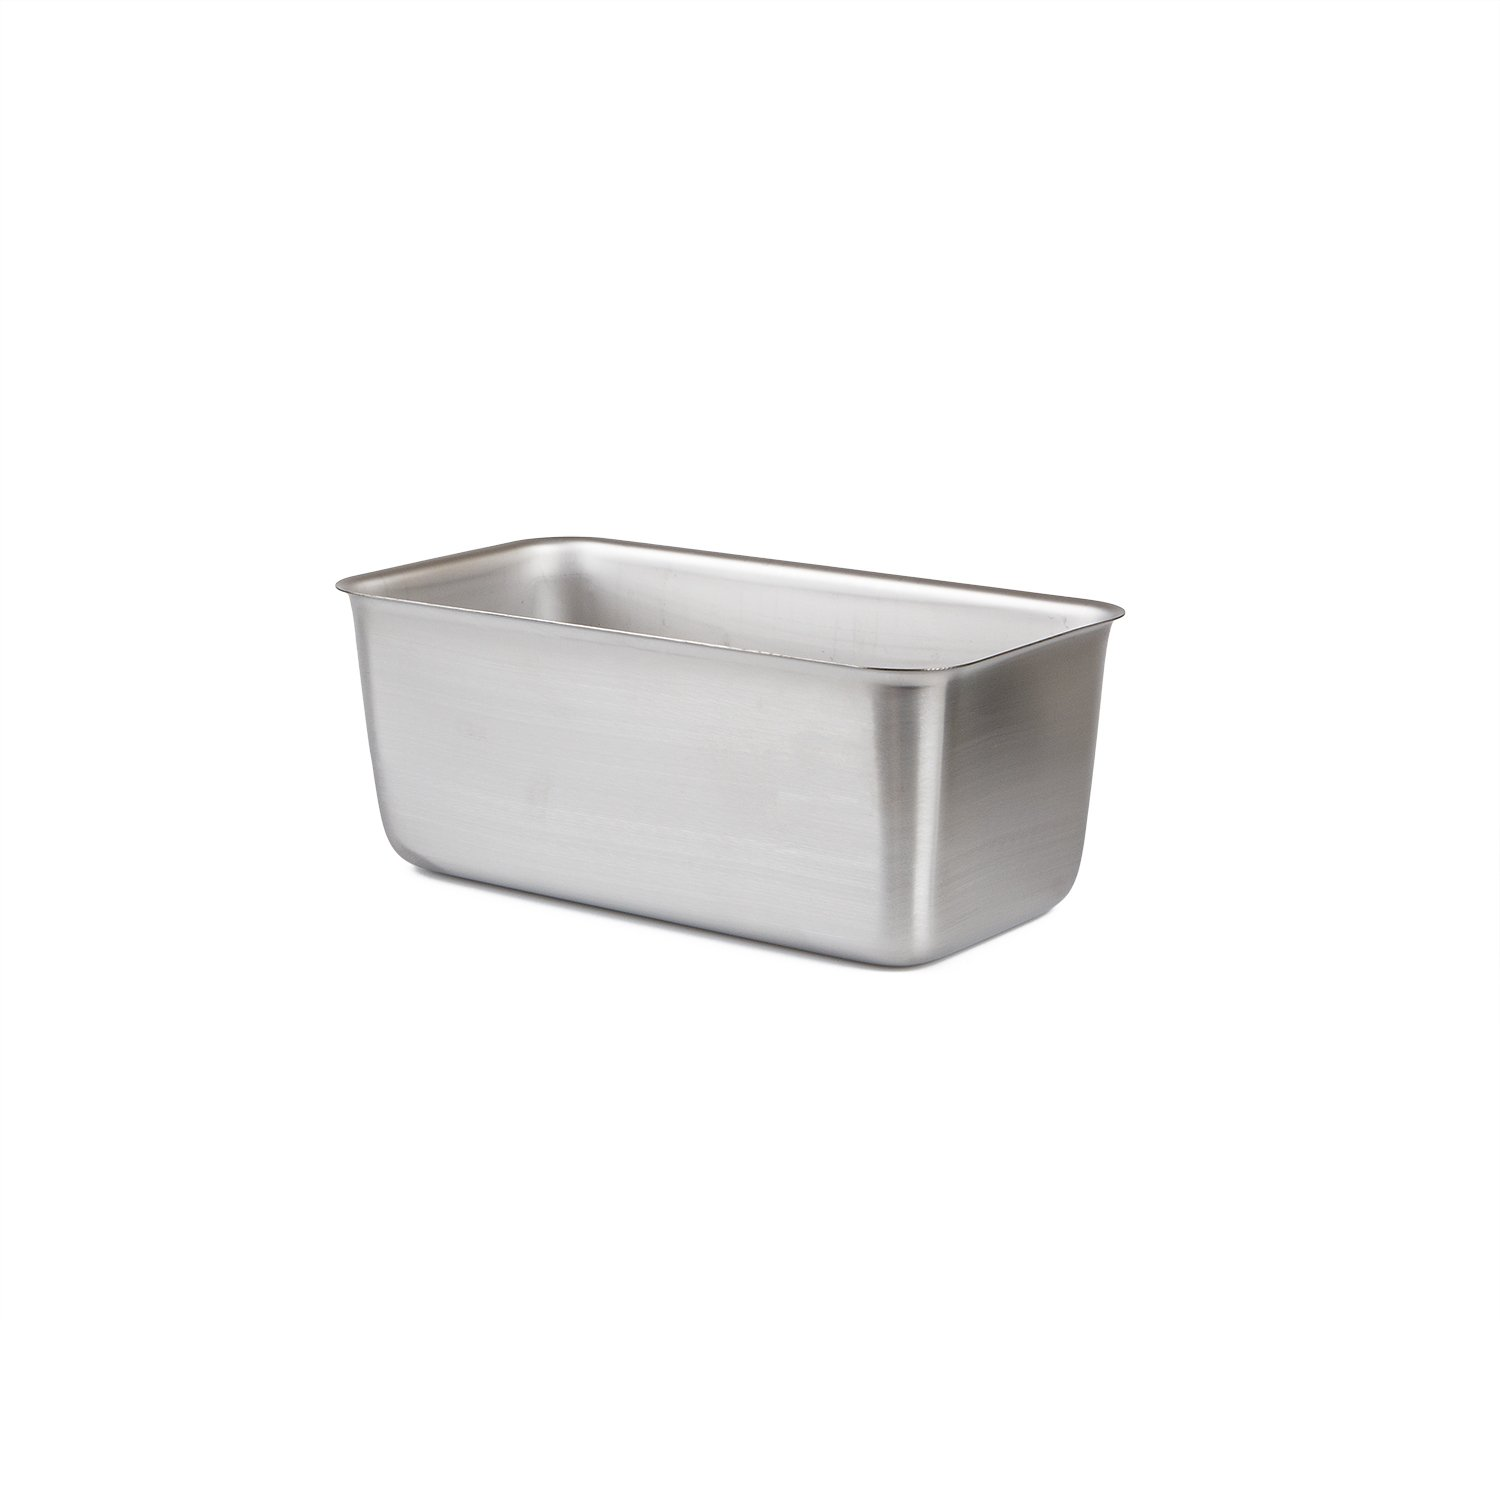 Medegen Medical Products 72060 Tray, Standard Gauge, Stainless Steel